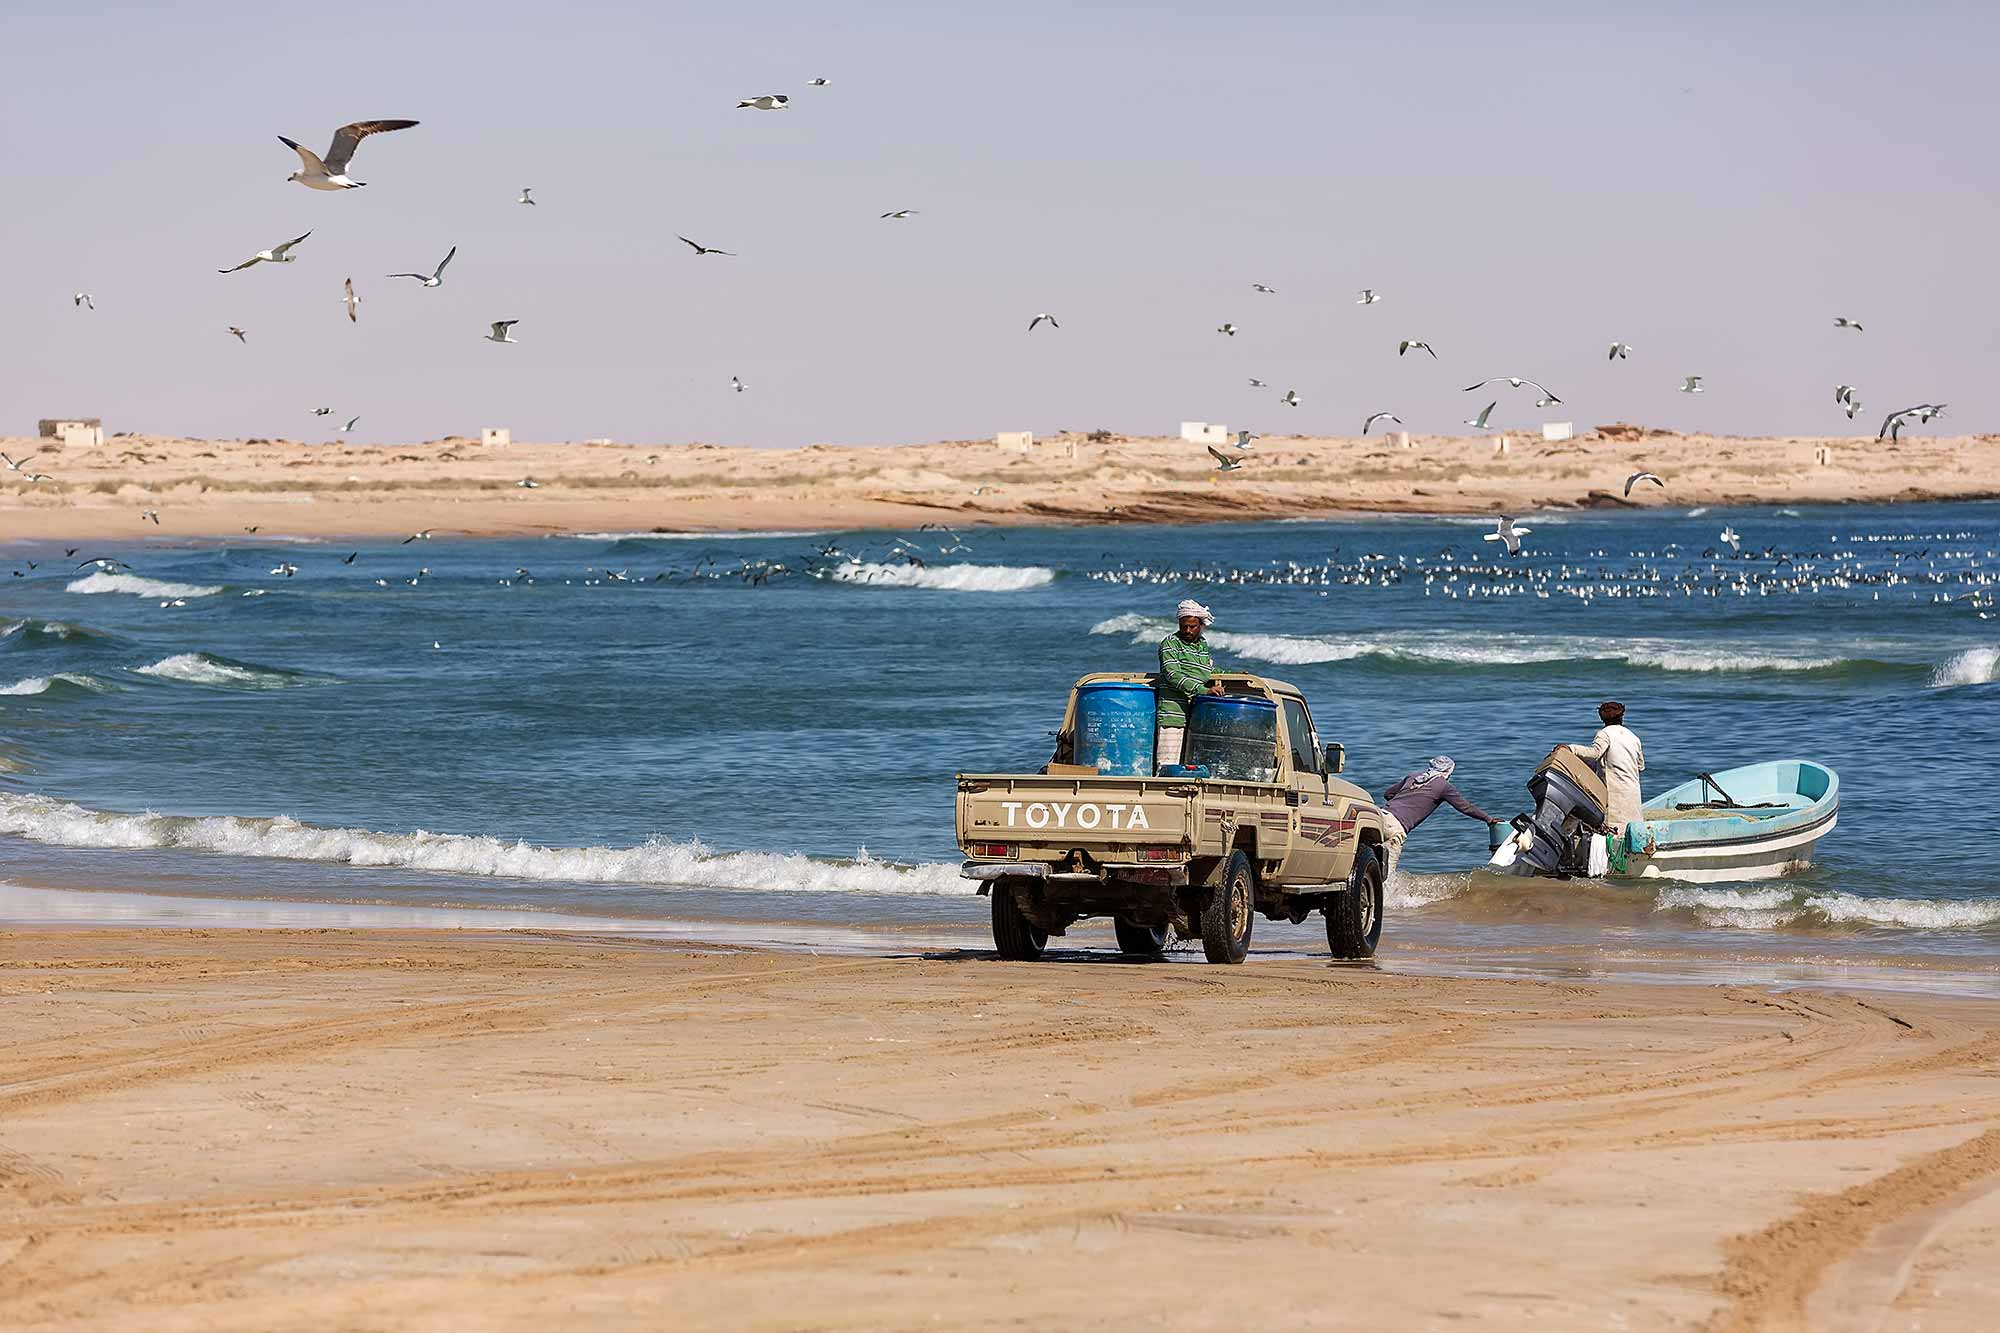 Fishing at the beach in Al Ashkharah. © Ulli Maier & Nisa Maier